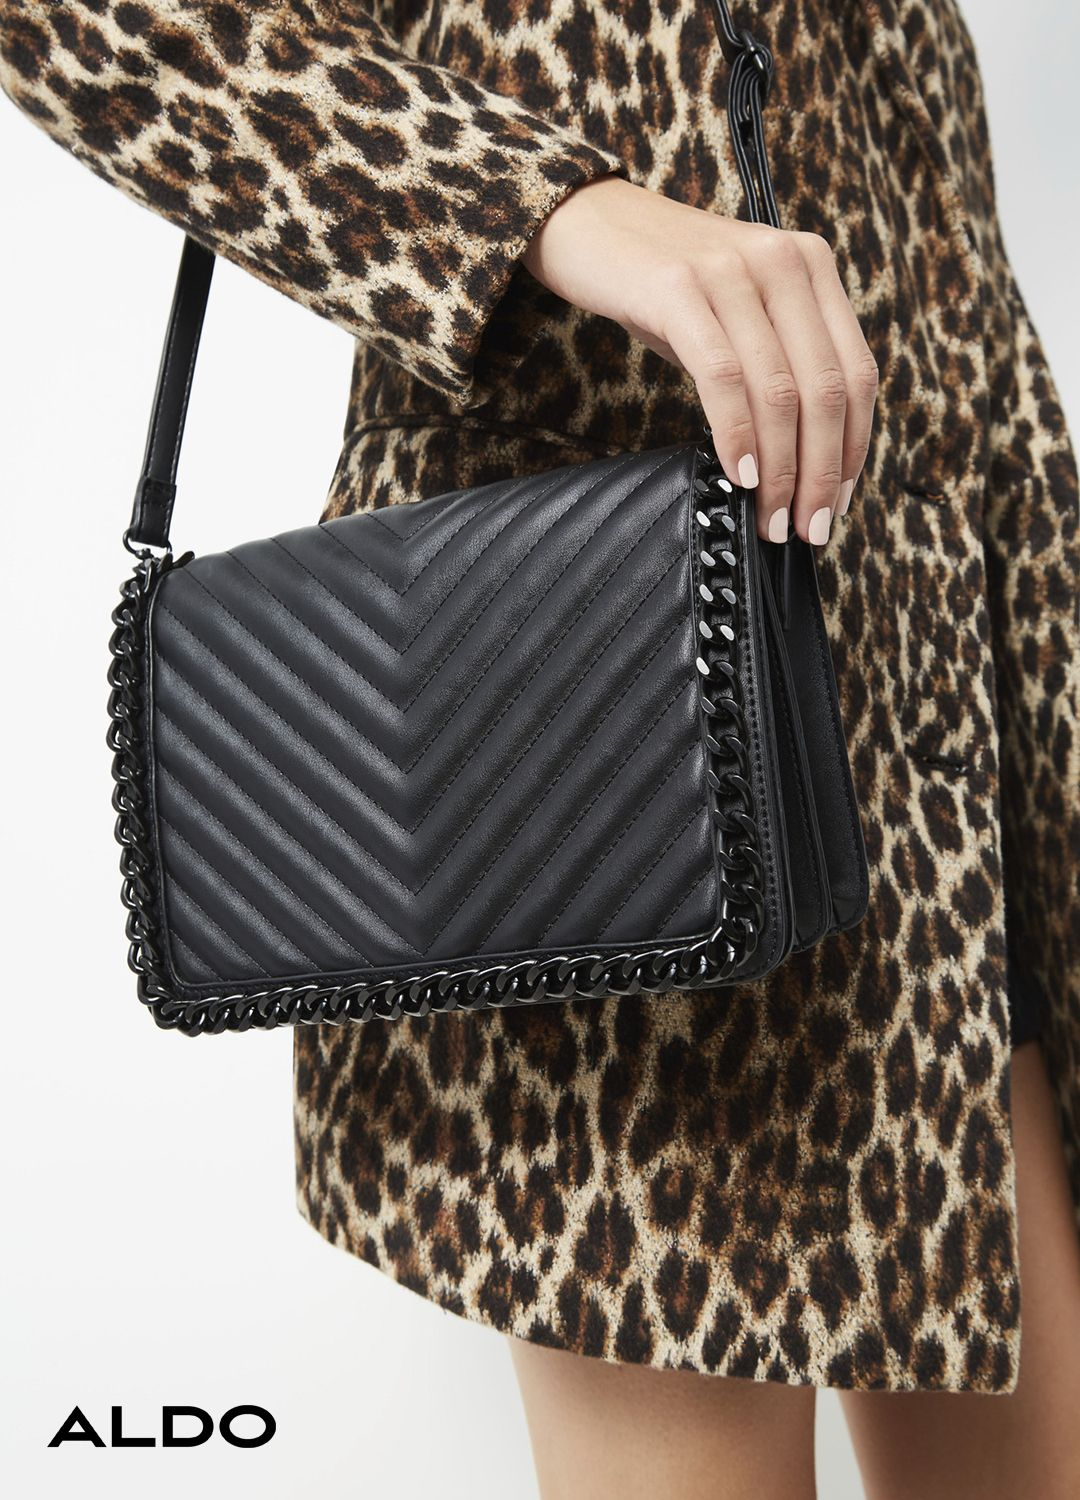 da9528b3ade Aldo bag #GiftMeAldo - black bag that goes with everything.... CHECK! ✓  #giftmealdo